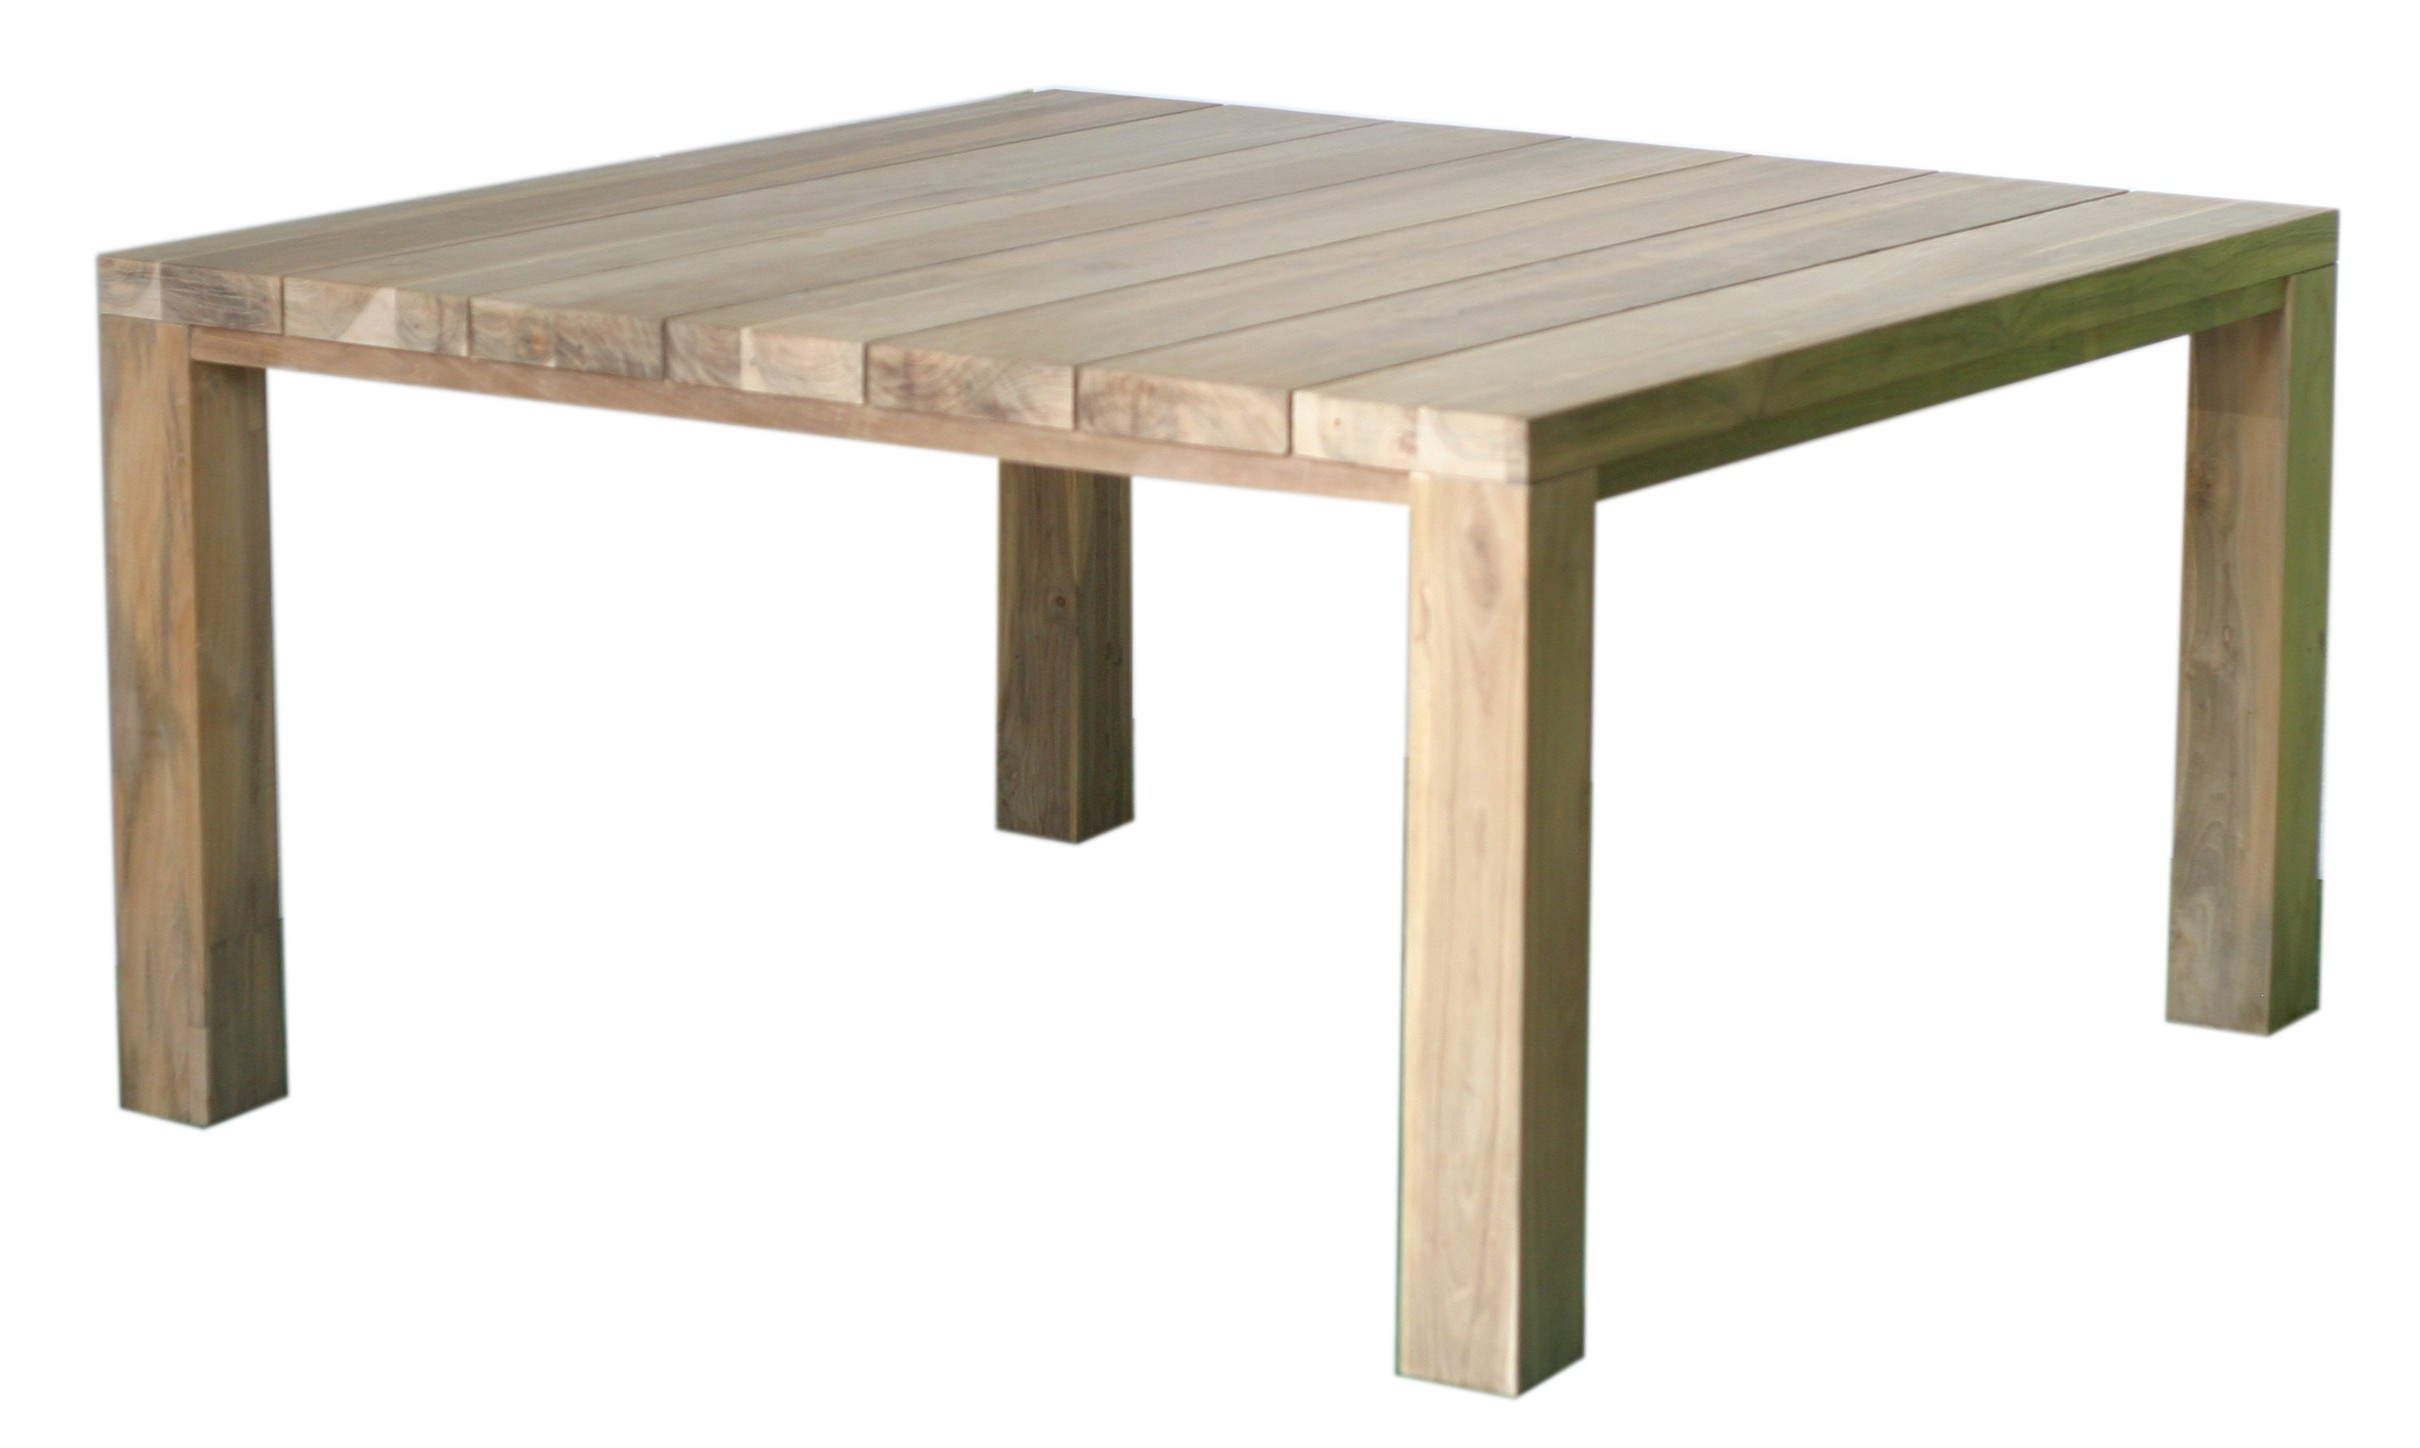 Grande table de jardin carree des id es for Table de jardin carree